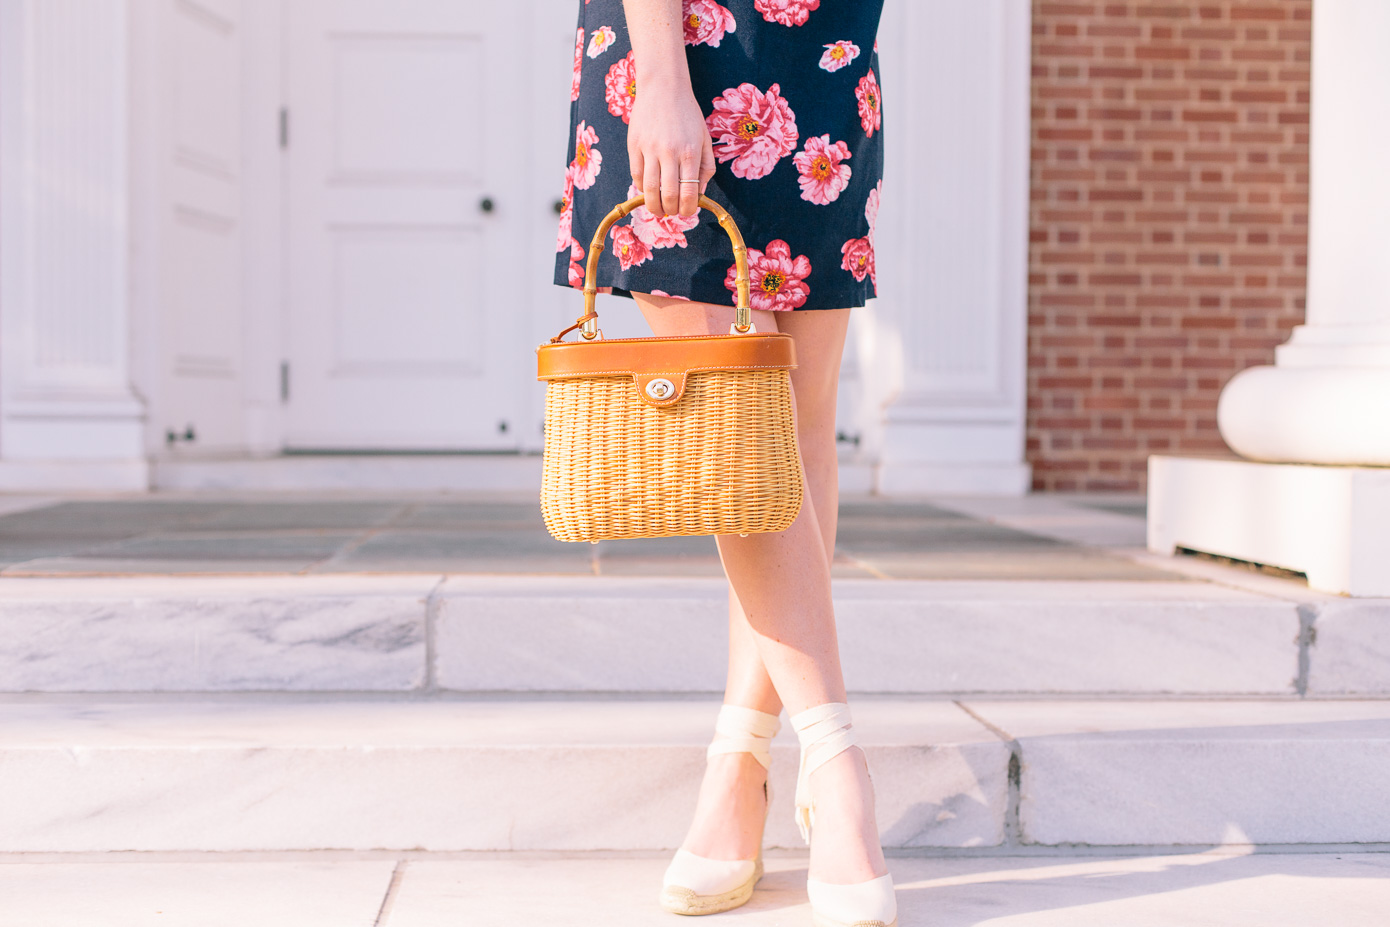 Navy and Pink Floral Off the Shoulder Dress + Basket Bag | Louella Reese Life & Style Blog